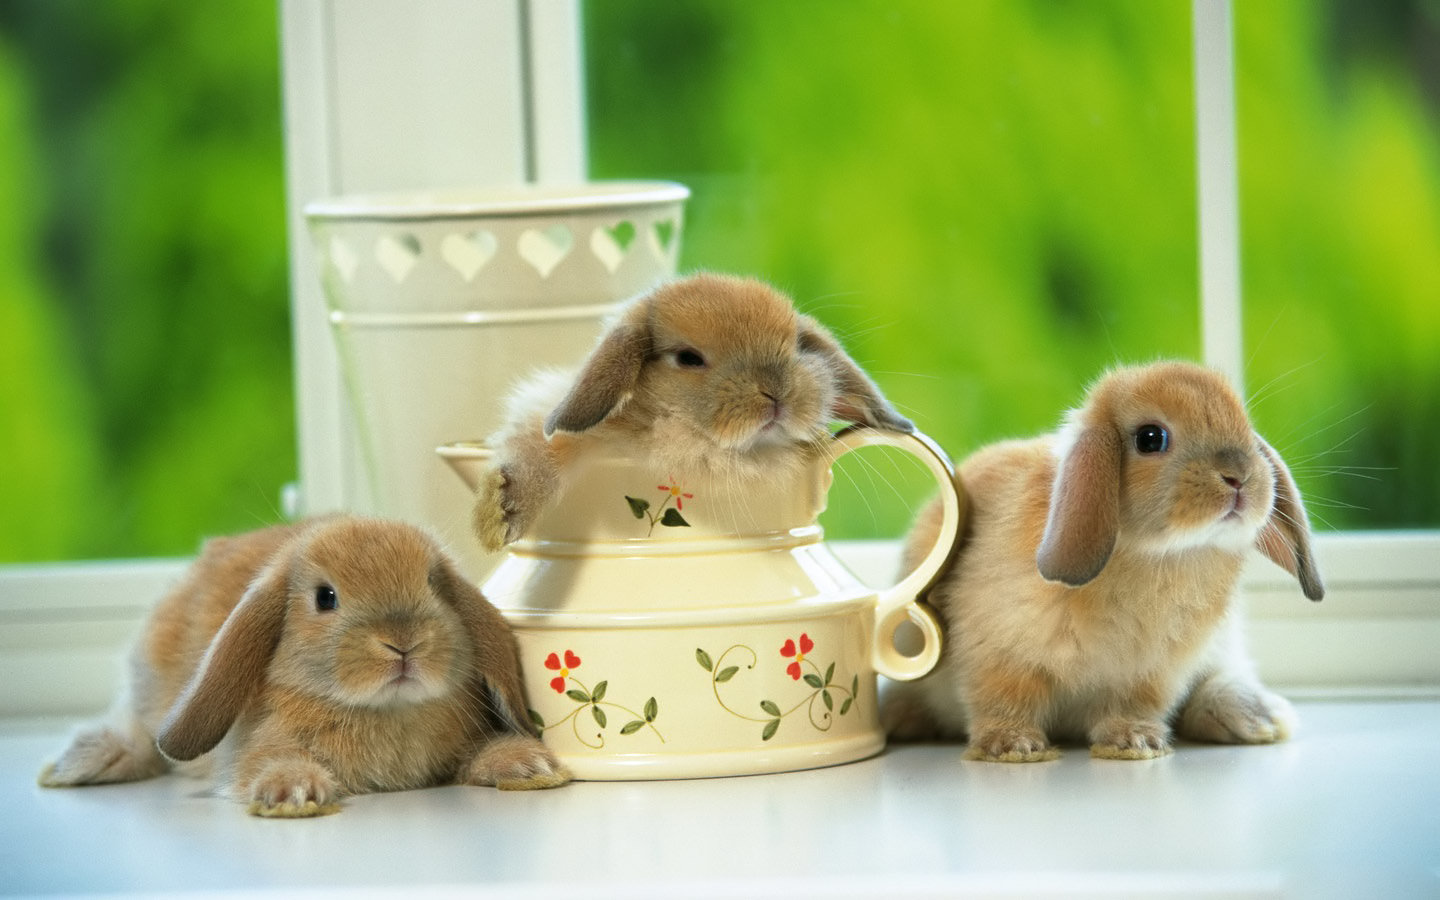 High resolution Rabbit & Bunny hd 1440x900 background ID:249064 for desktop